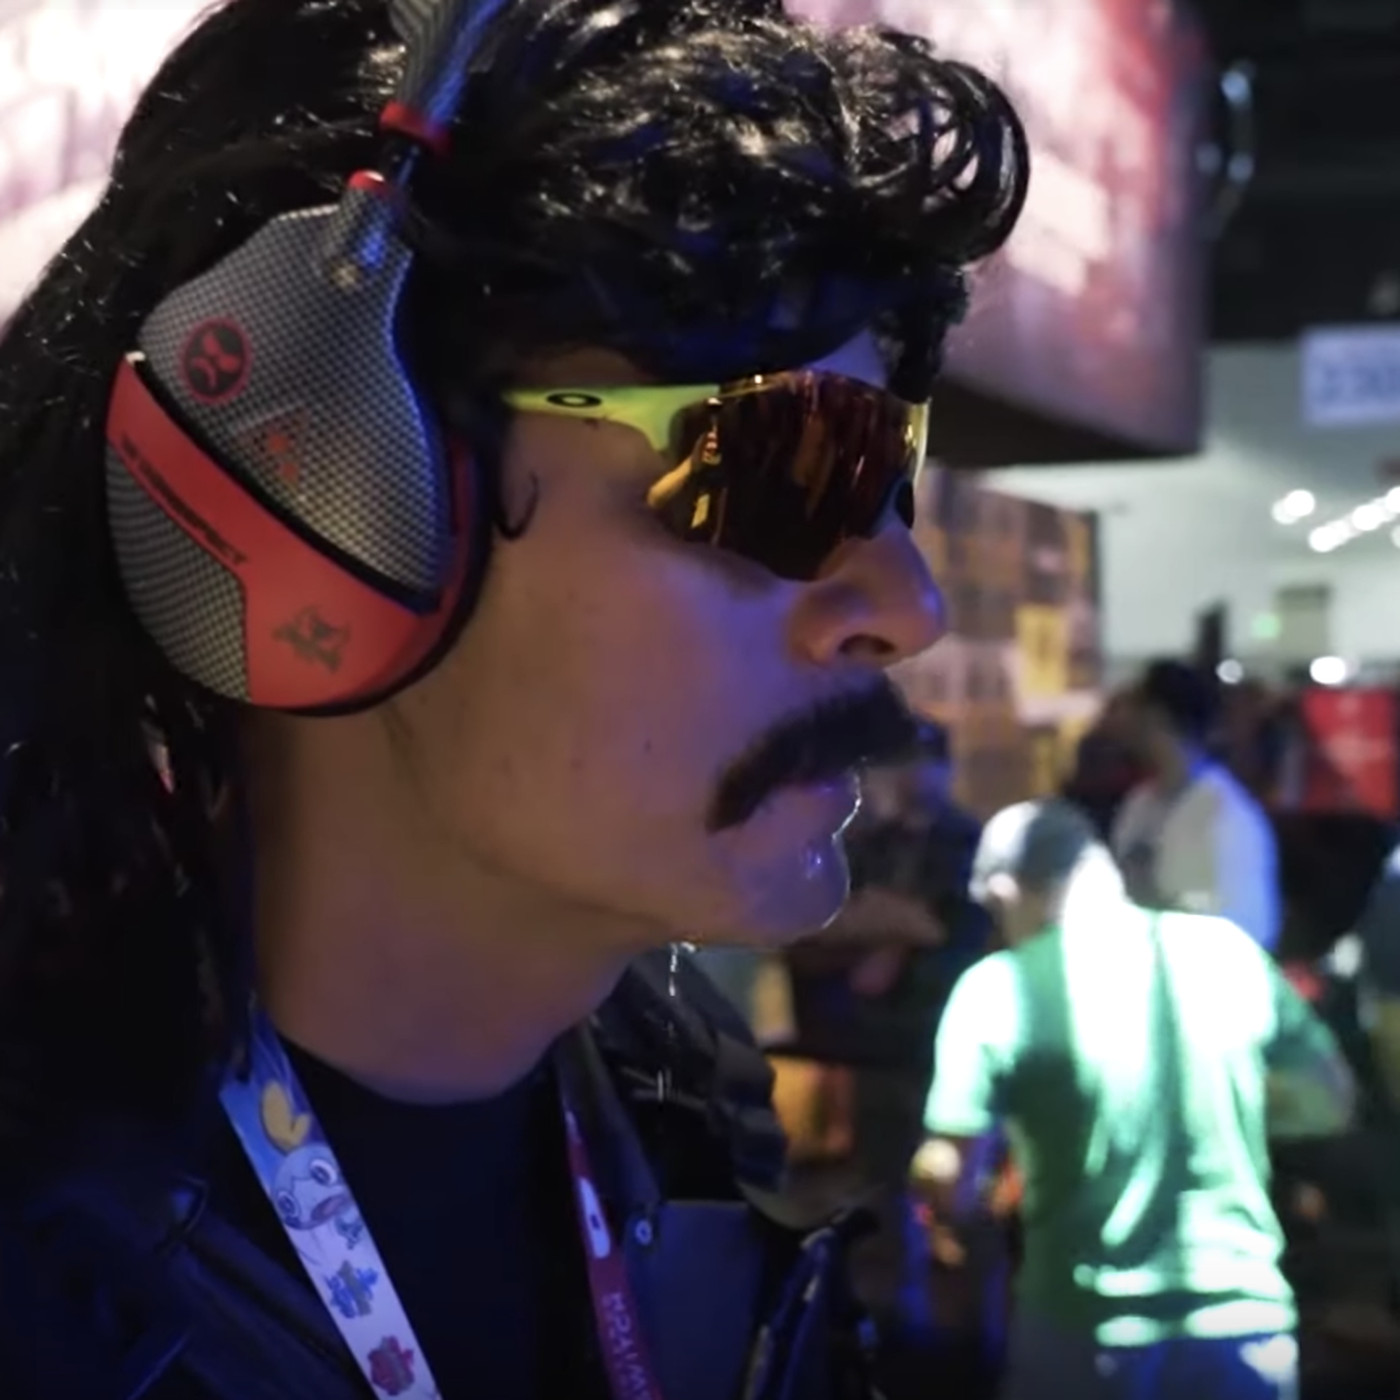 Dr Disrespect's suspension is a big moderation moment for